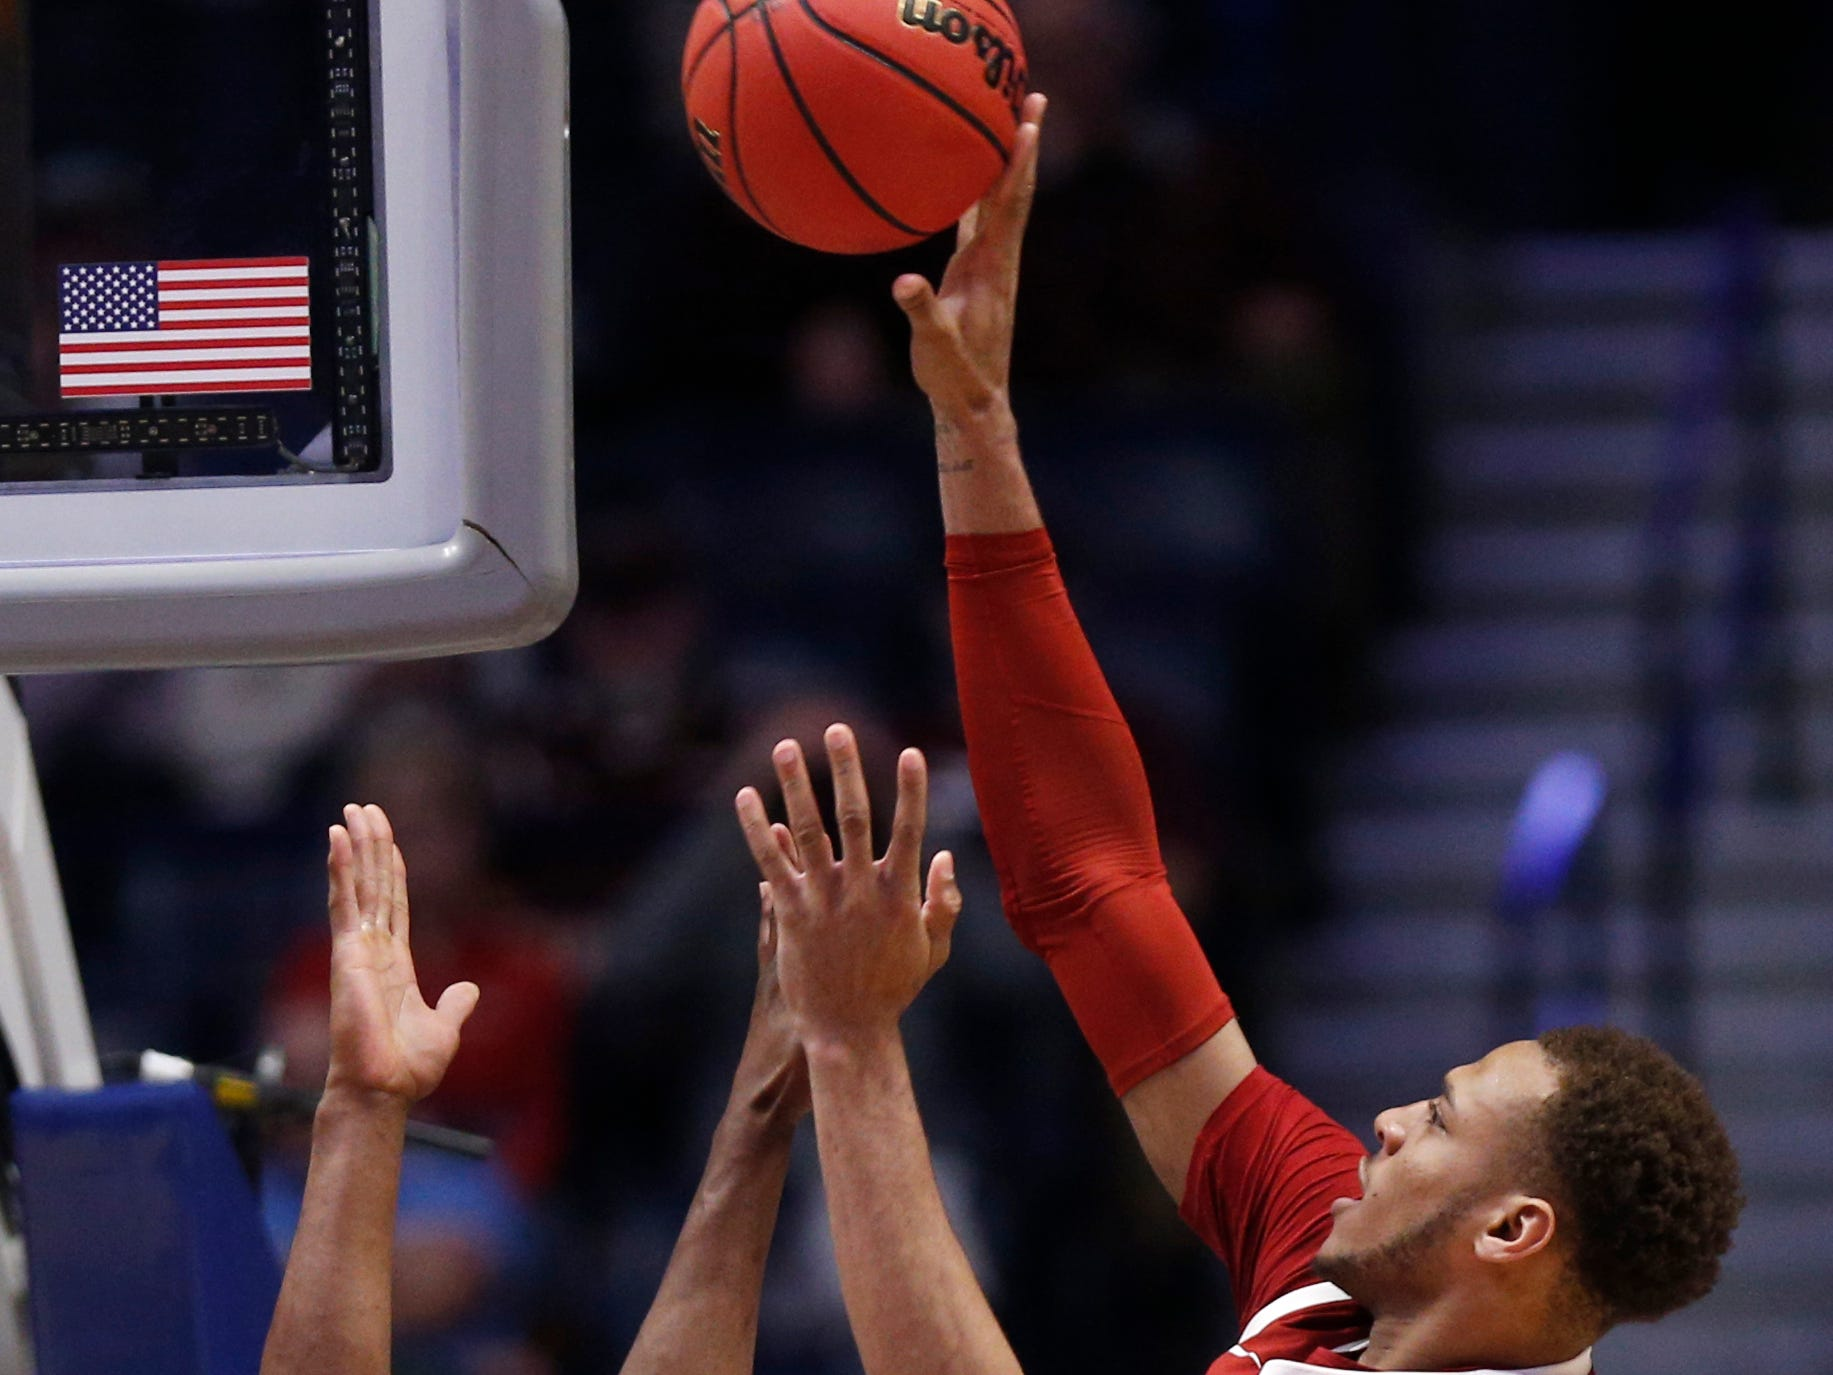 Arkansas forward Daniel Gafford (10) goes up for a shot defended by Florida center Kevarrius Hayes (13) during the second half of the SEC Men's Basketball Tournament game at Bridgestone Arena in Nashville, Tenn., Thursday, March 14, 2019.